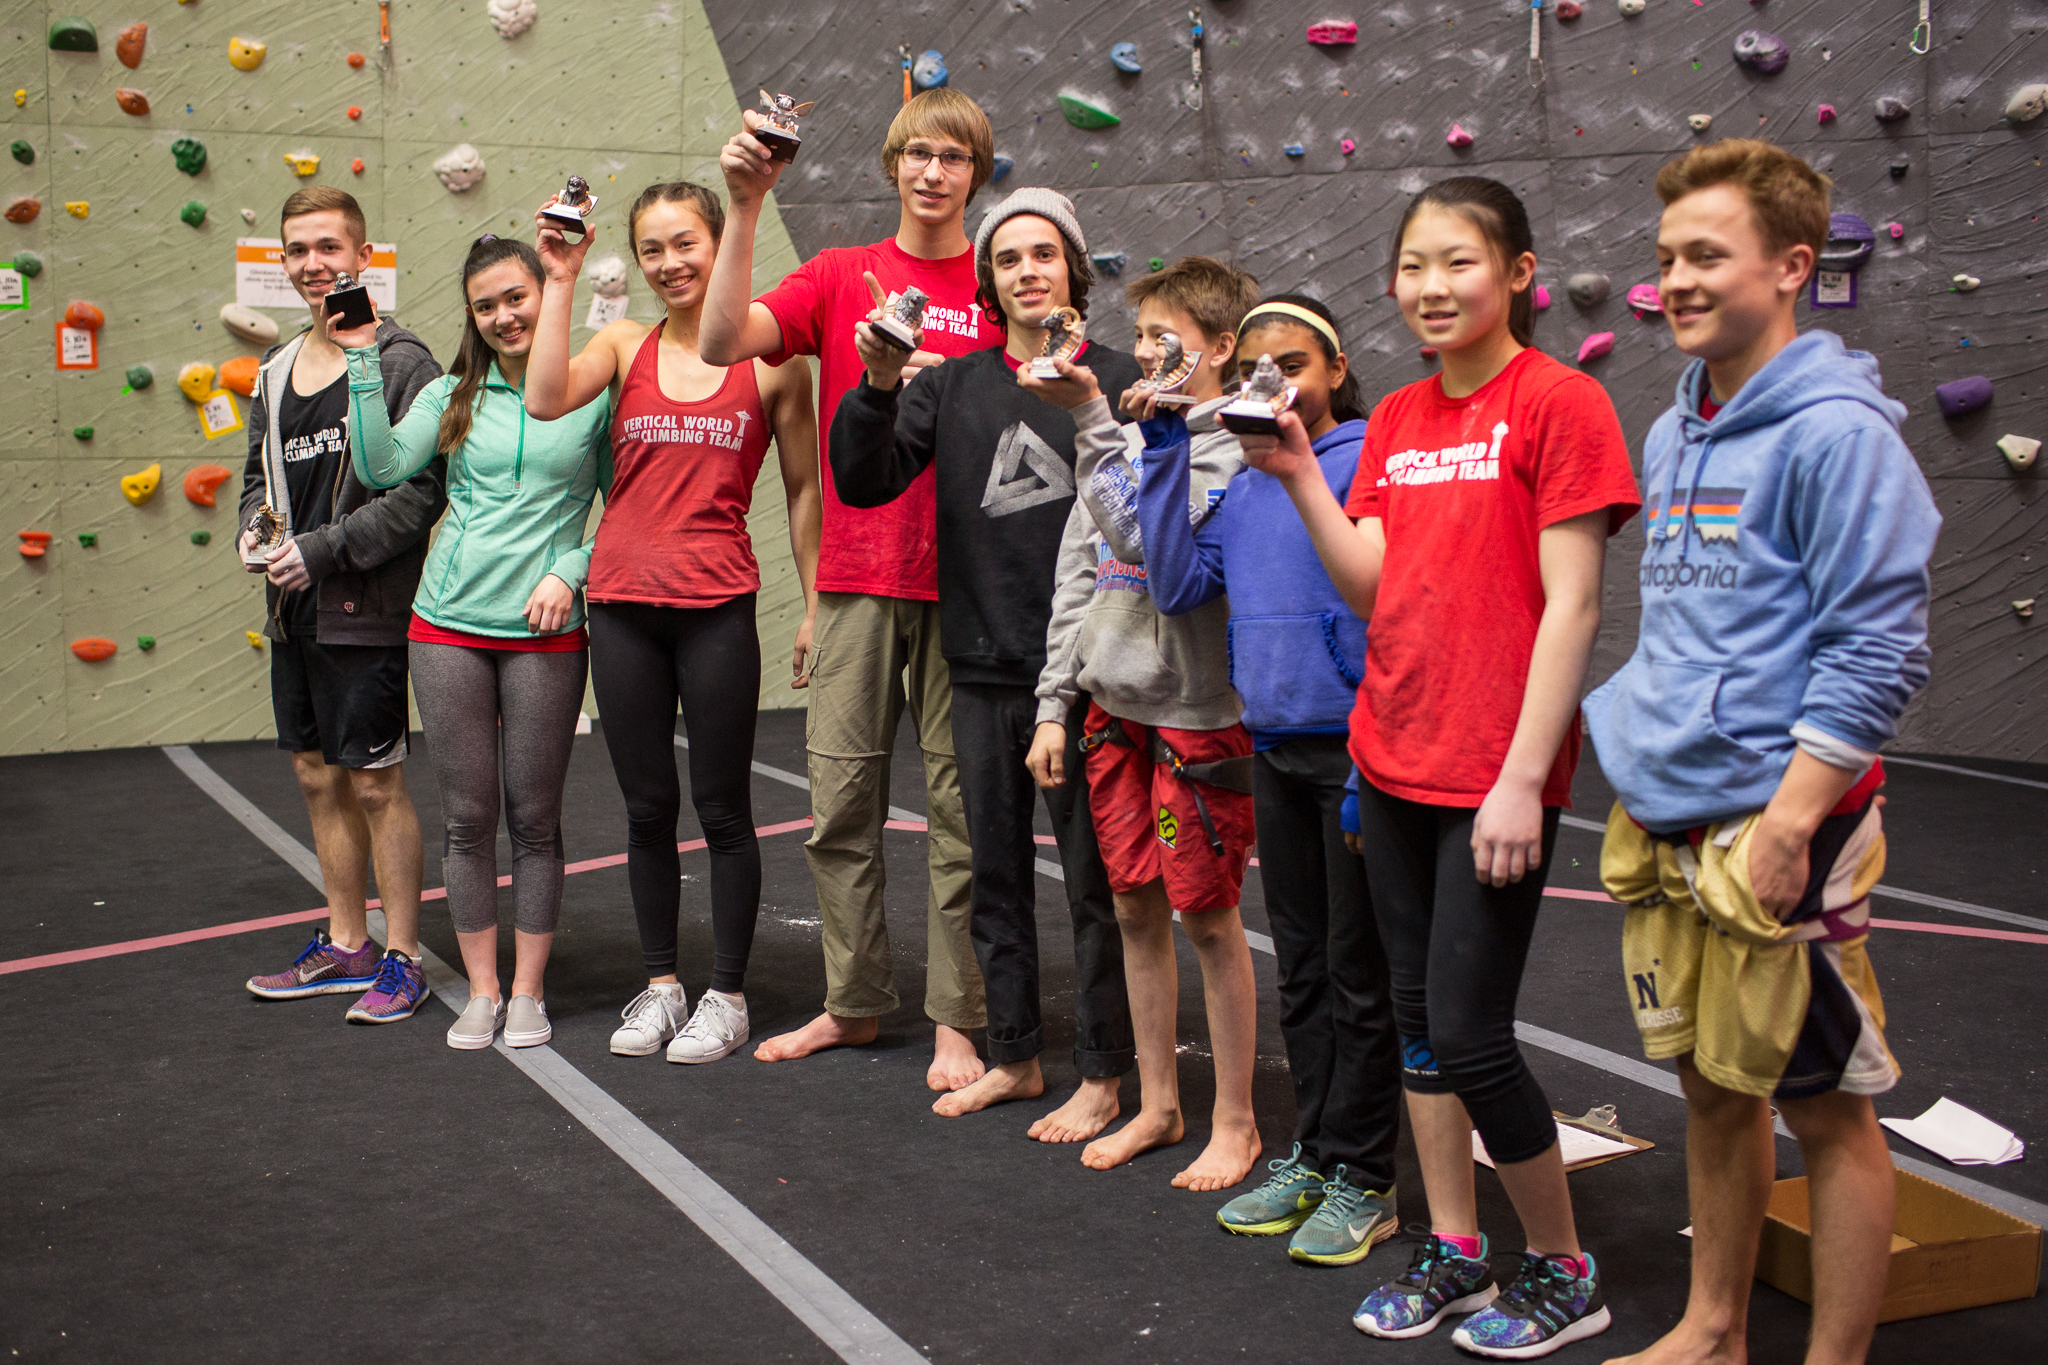 The Vertical World Youth team celebrating their win!  Photos: Brian Poon